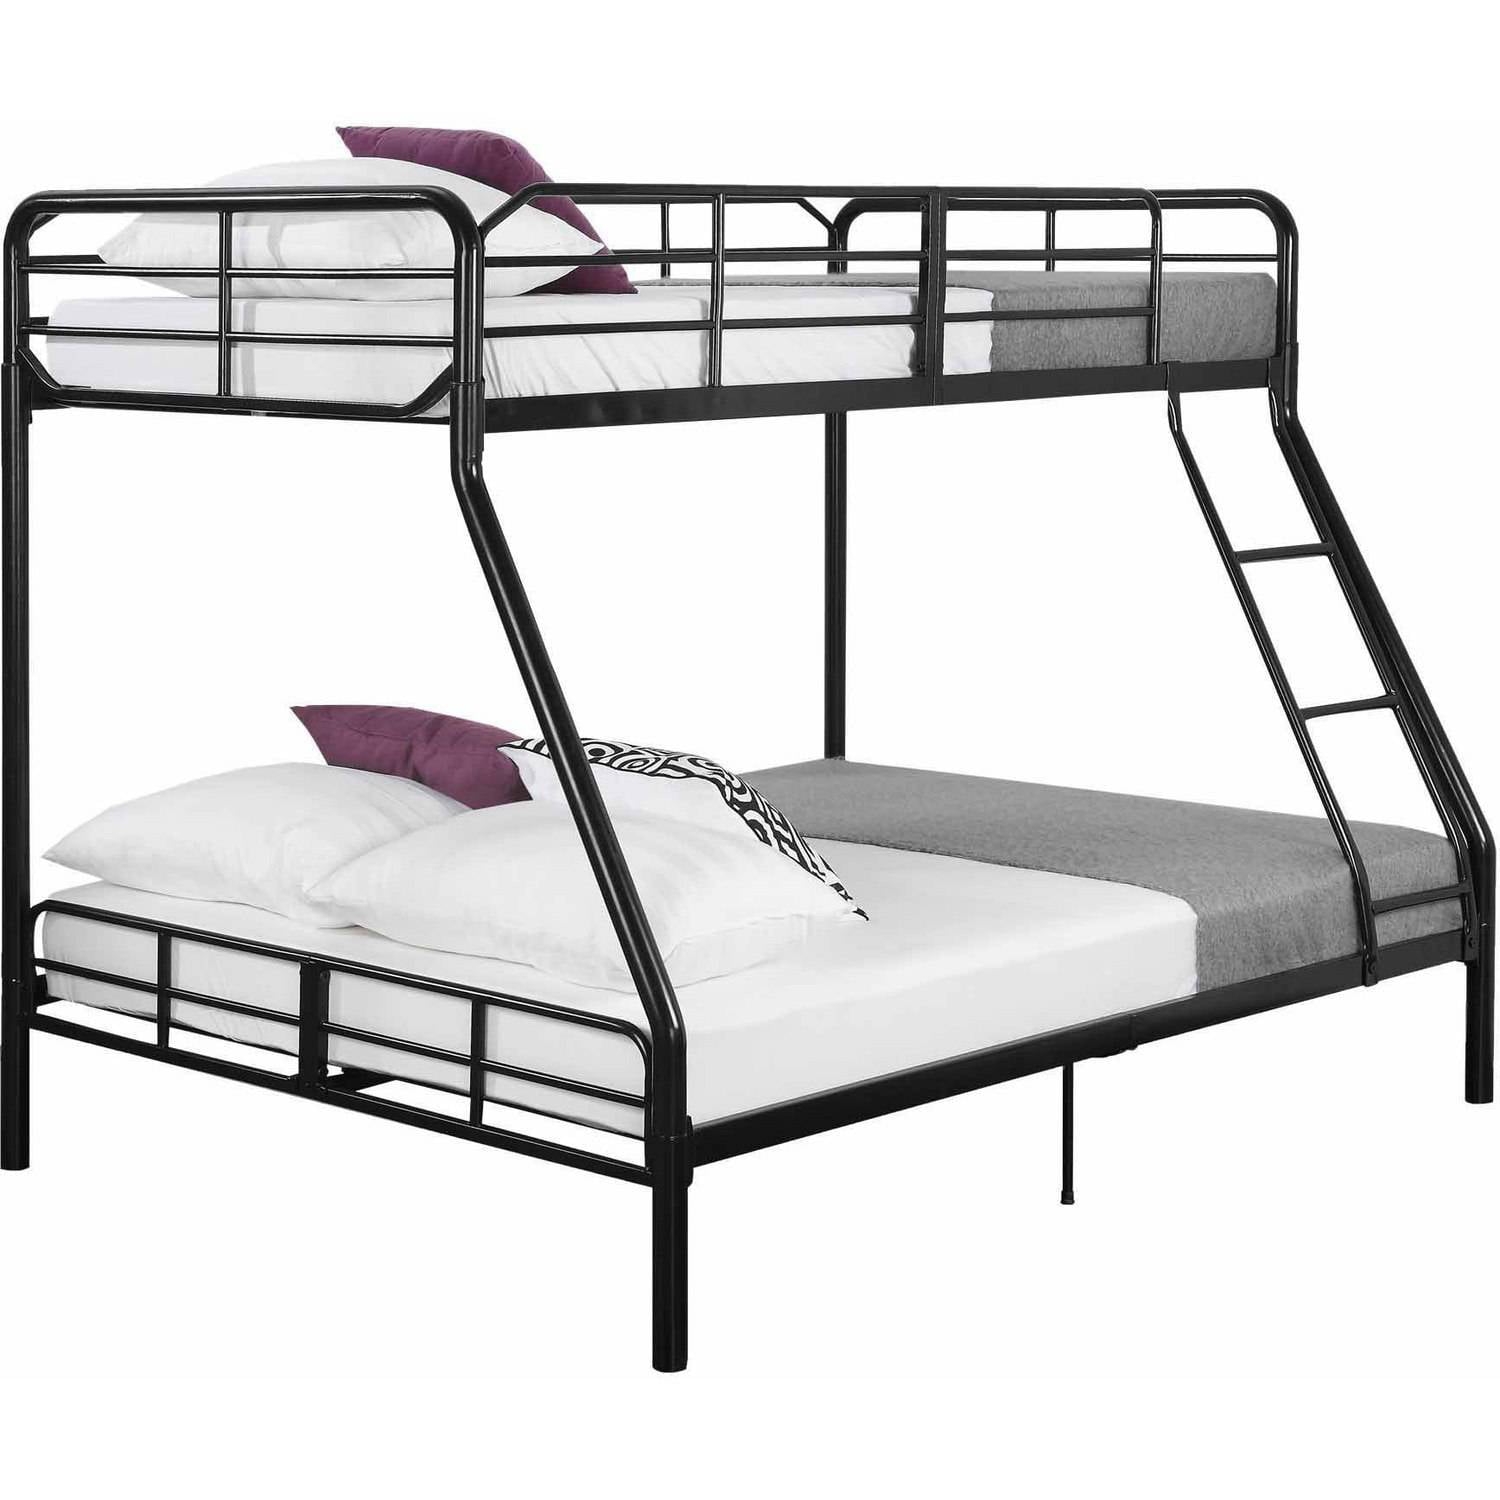 hot sale online 547f5 2811d Mainstays Twin Over Full Metal Sturdy Bunk Bed, Black